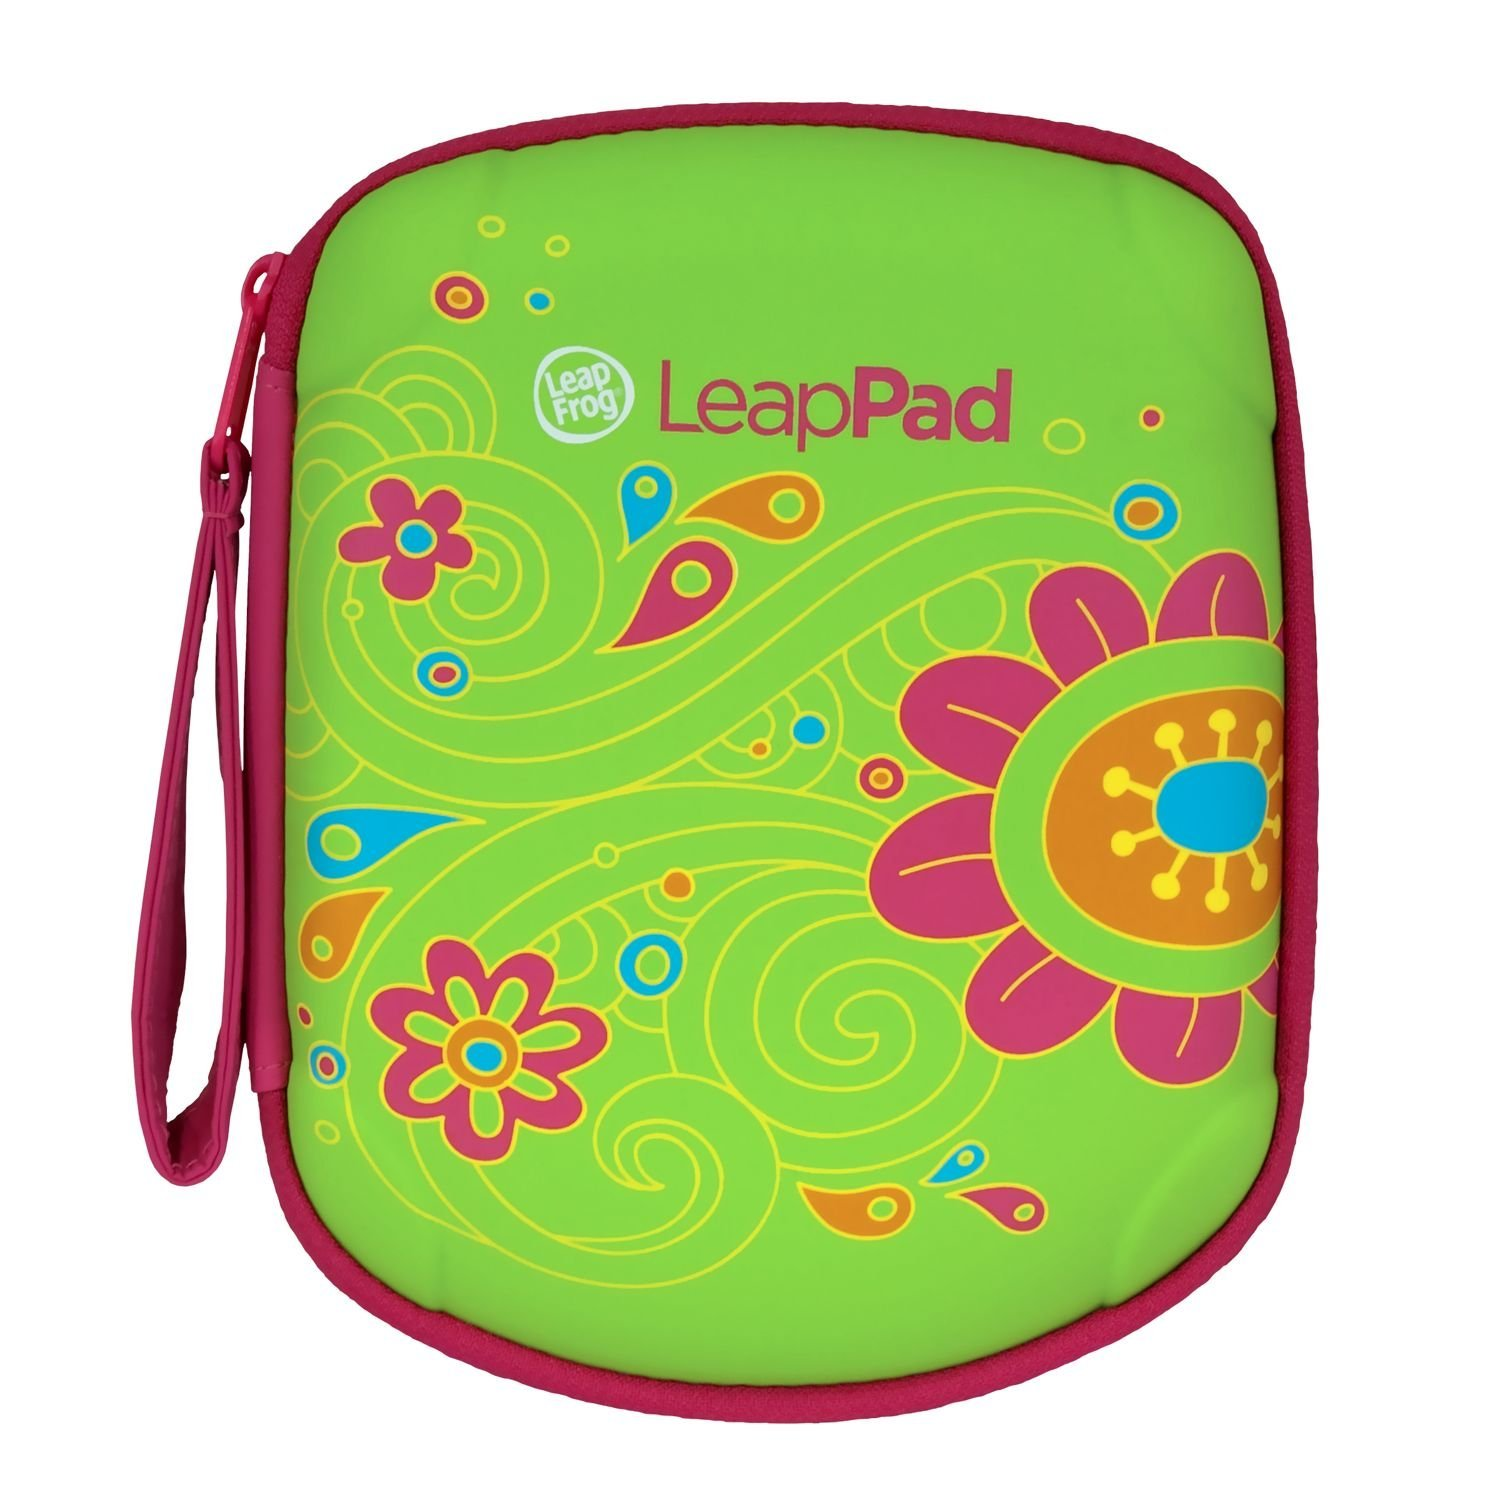 Leap Frog Learning Tablet LeapPad Explorer Exclusive Carrying Case Colors may vary By... by